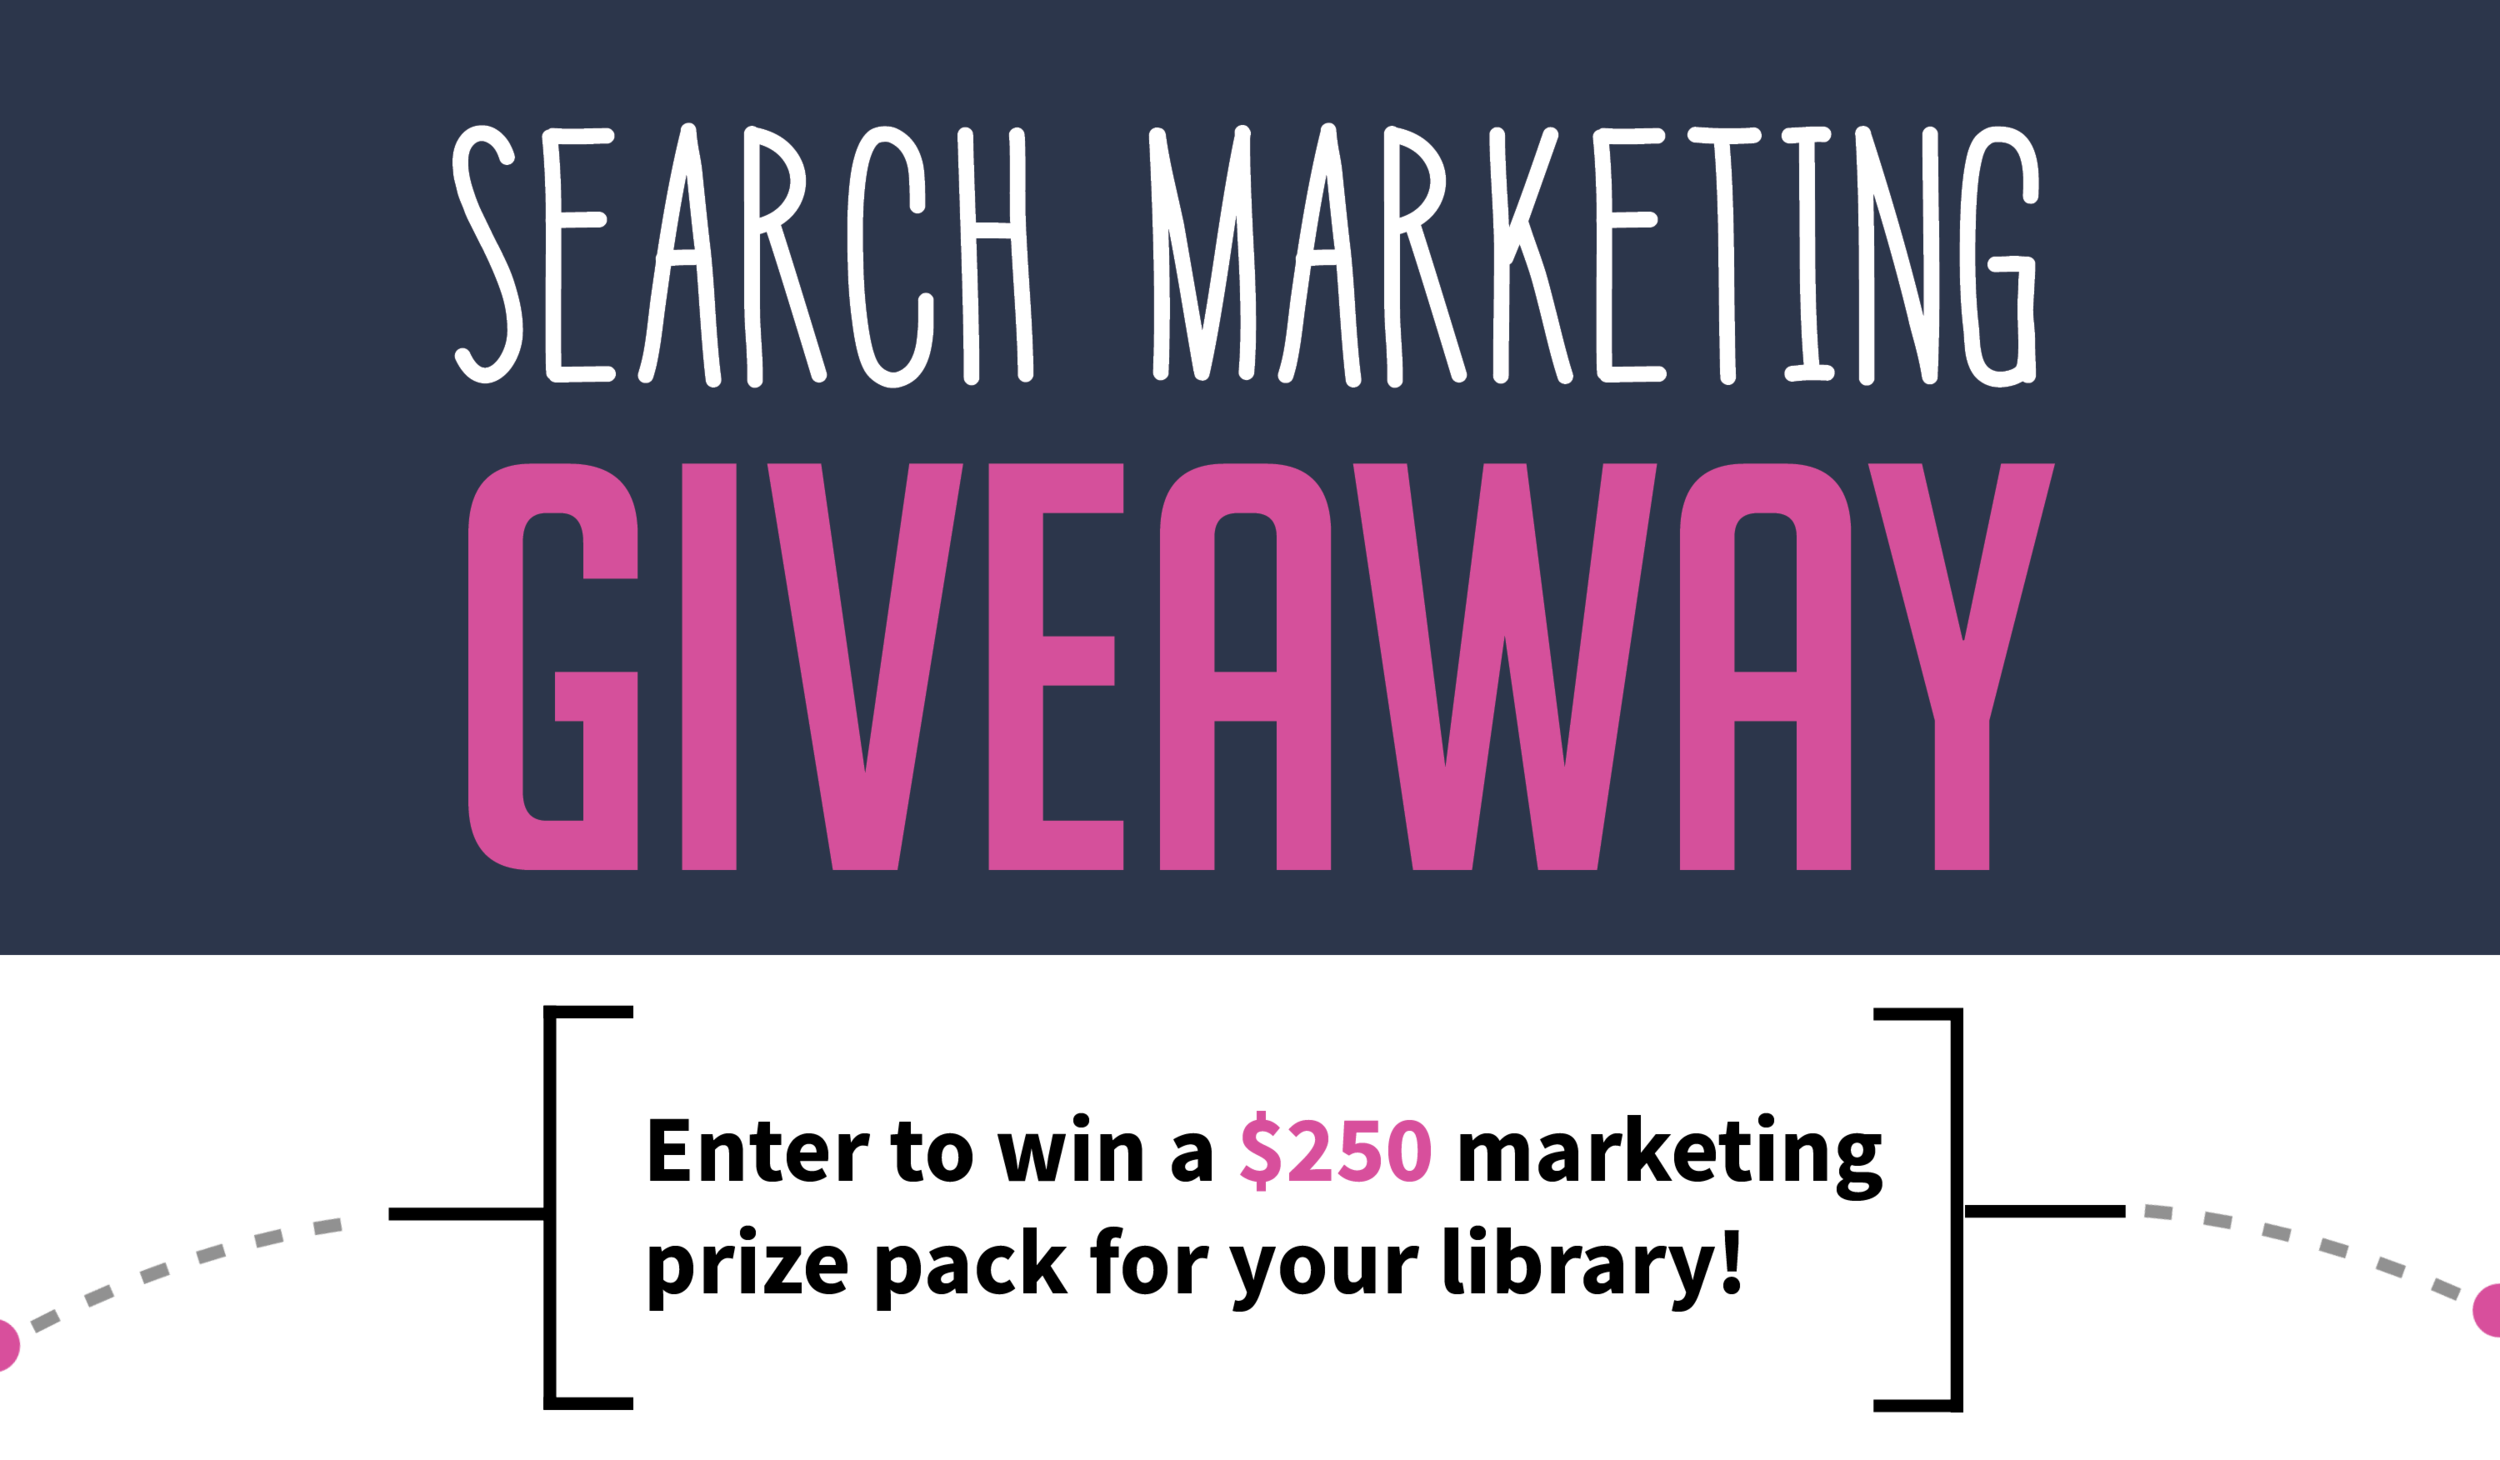 koios-summer-search-marketing-giveaway